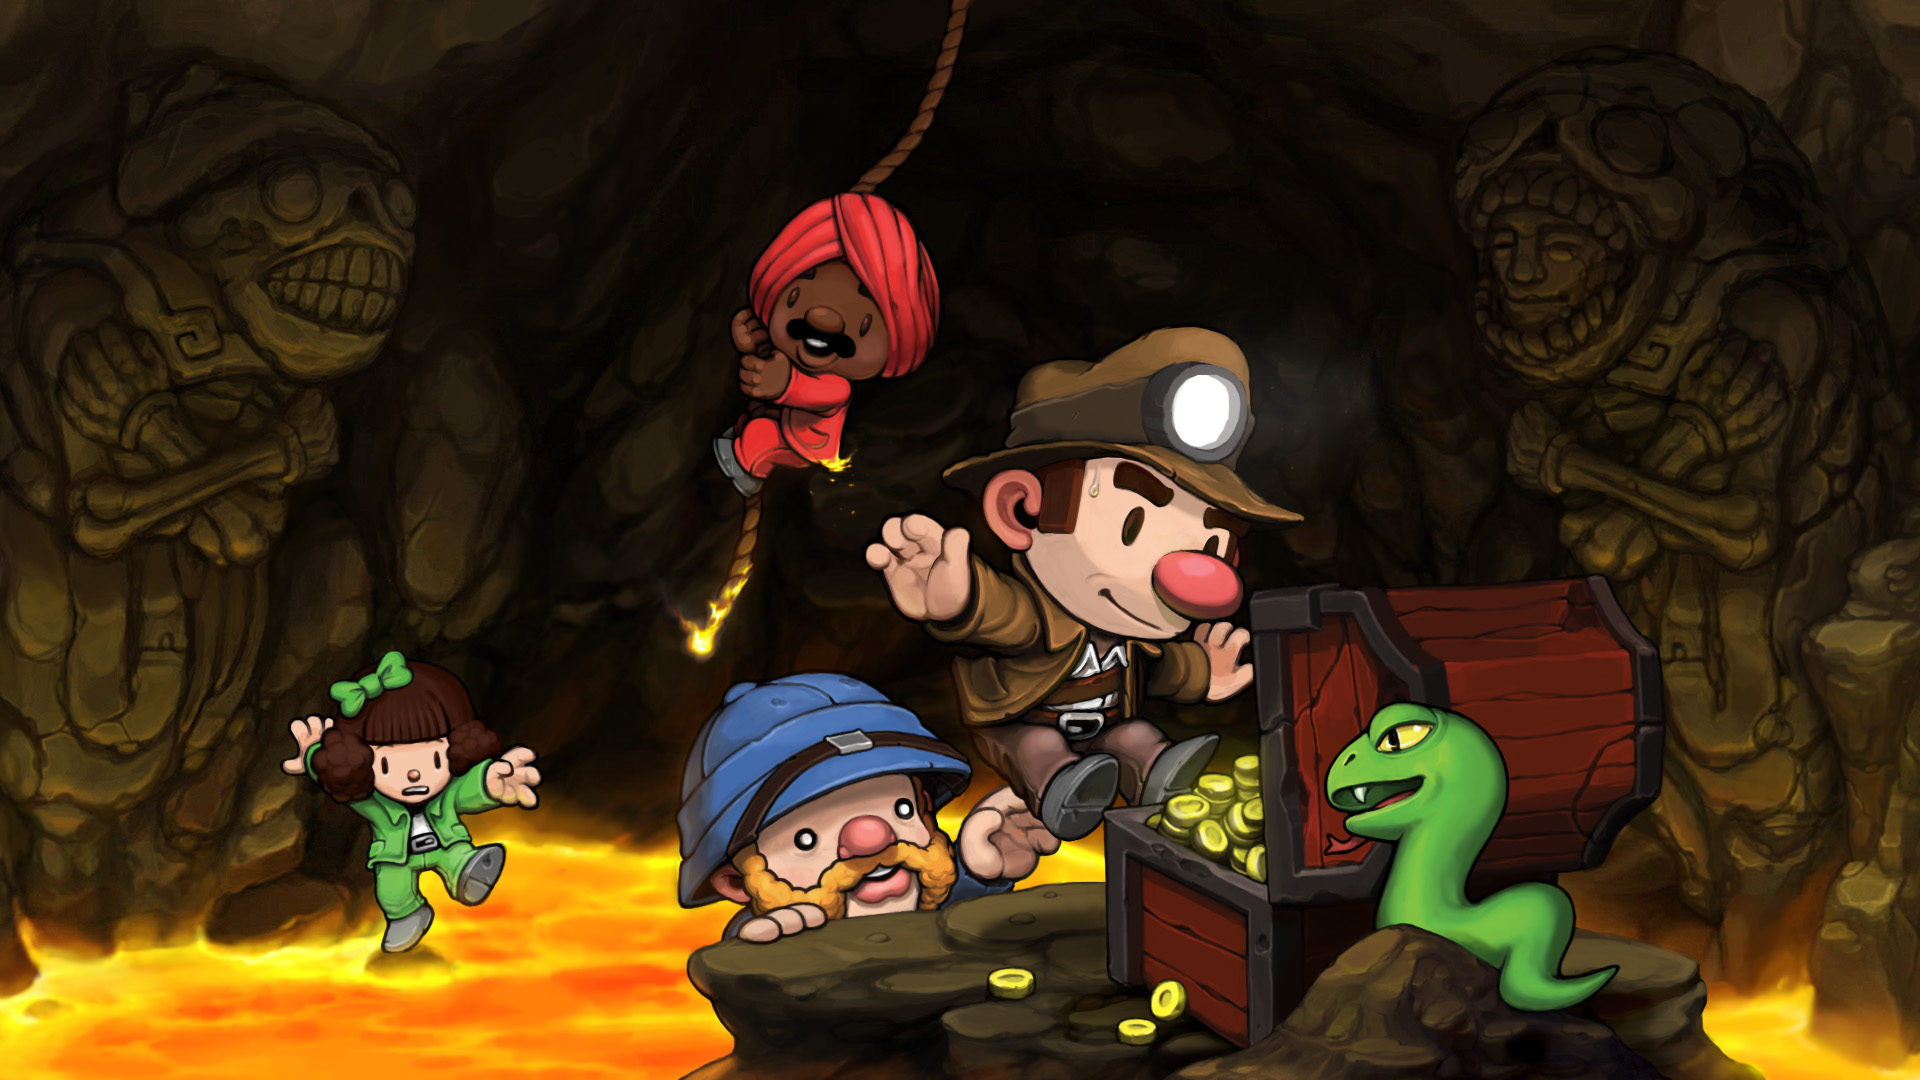 spelunky wallpaper A2